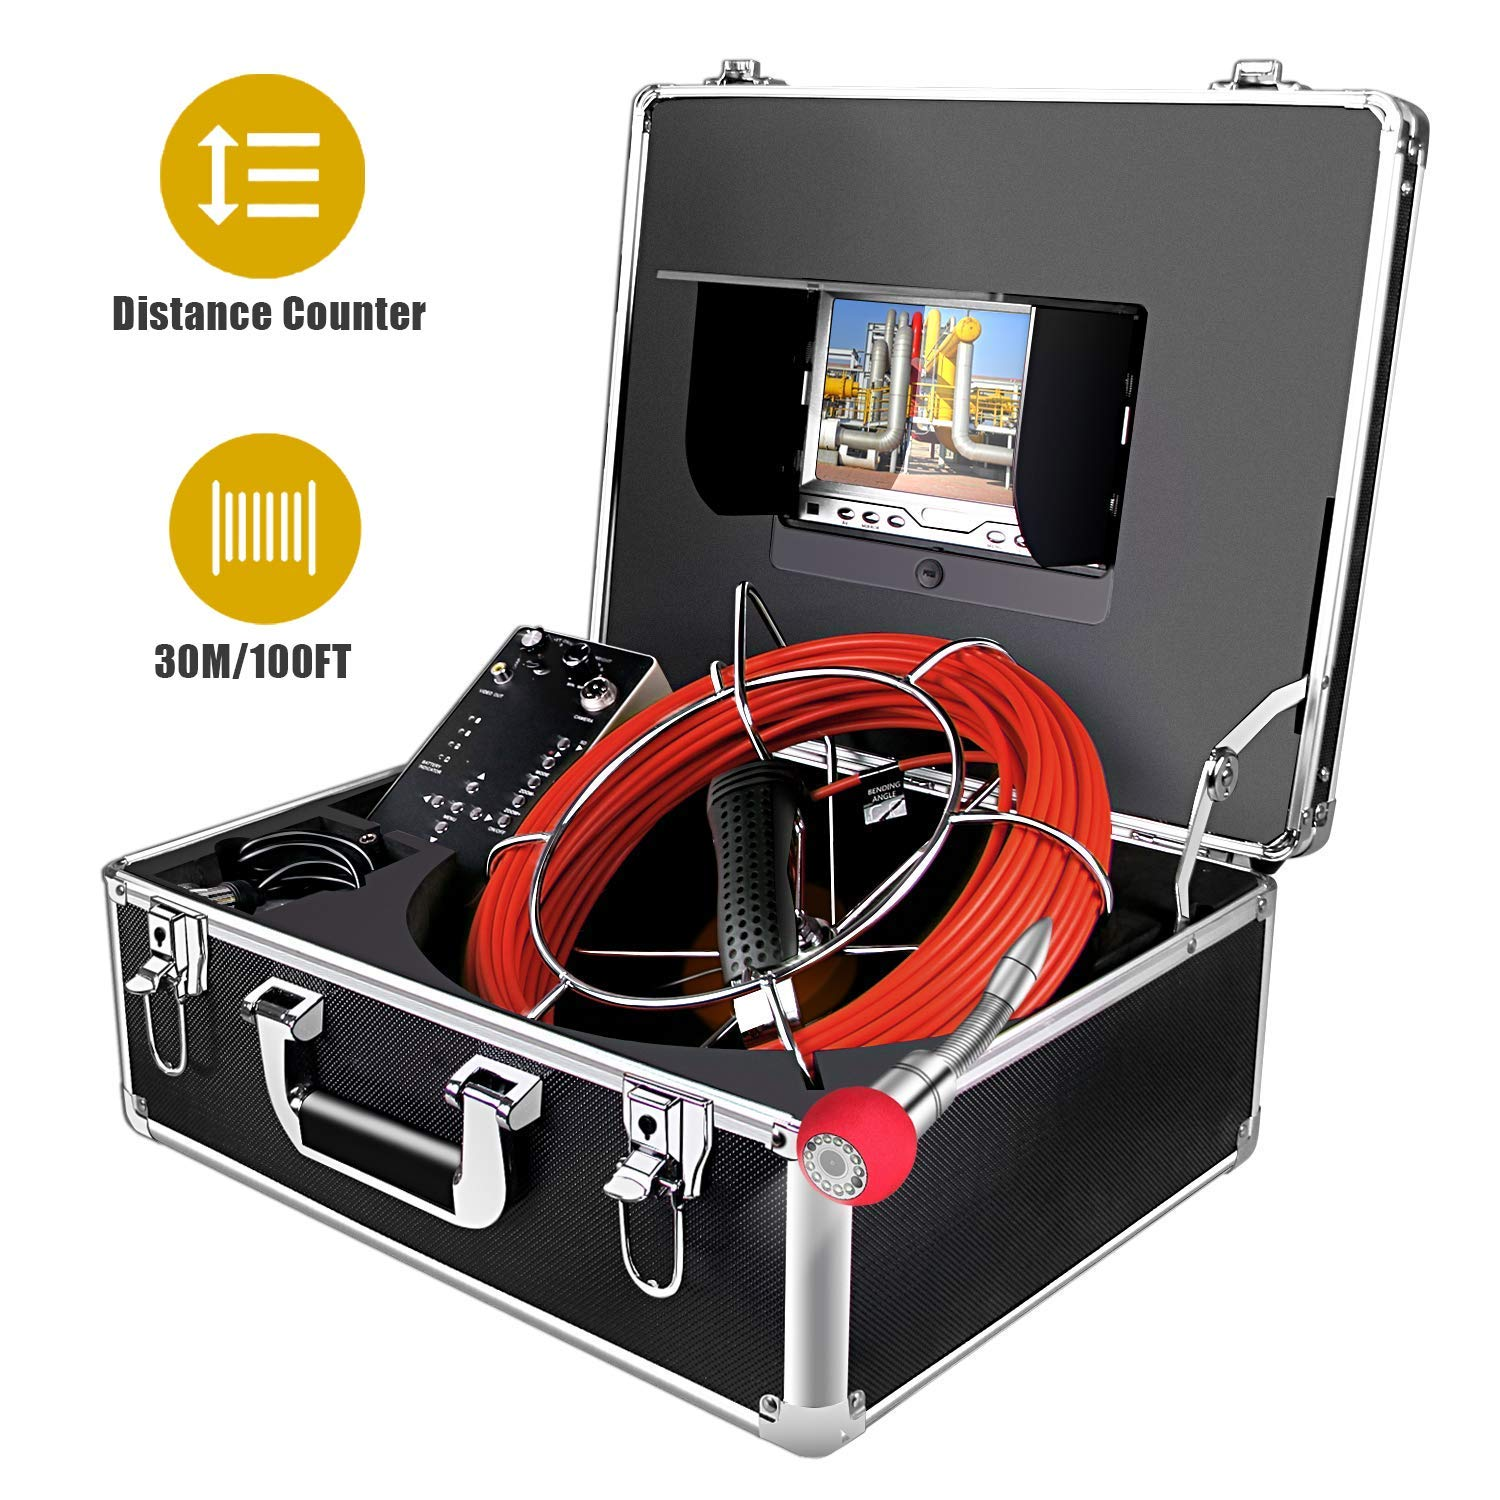 Sewer Camera,Inspection Camera 100ft/30M Cable with Distance Counter Industrial Endoscope DVR Video Record 7'' TFT Monitor 1000TVL Sony CCD Duct HVAC Borescope Waterproof IP68 Camera (7D1-30M-DVR-DC) by Aukfa